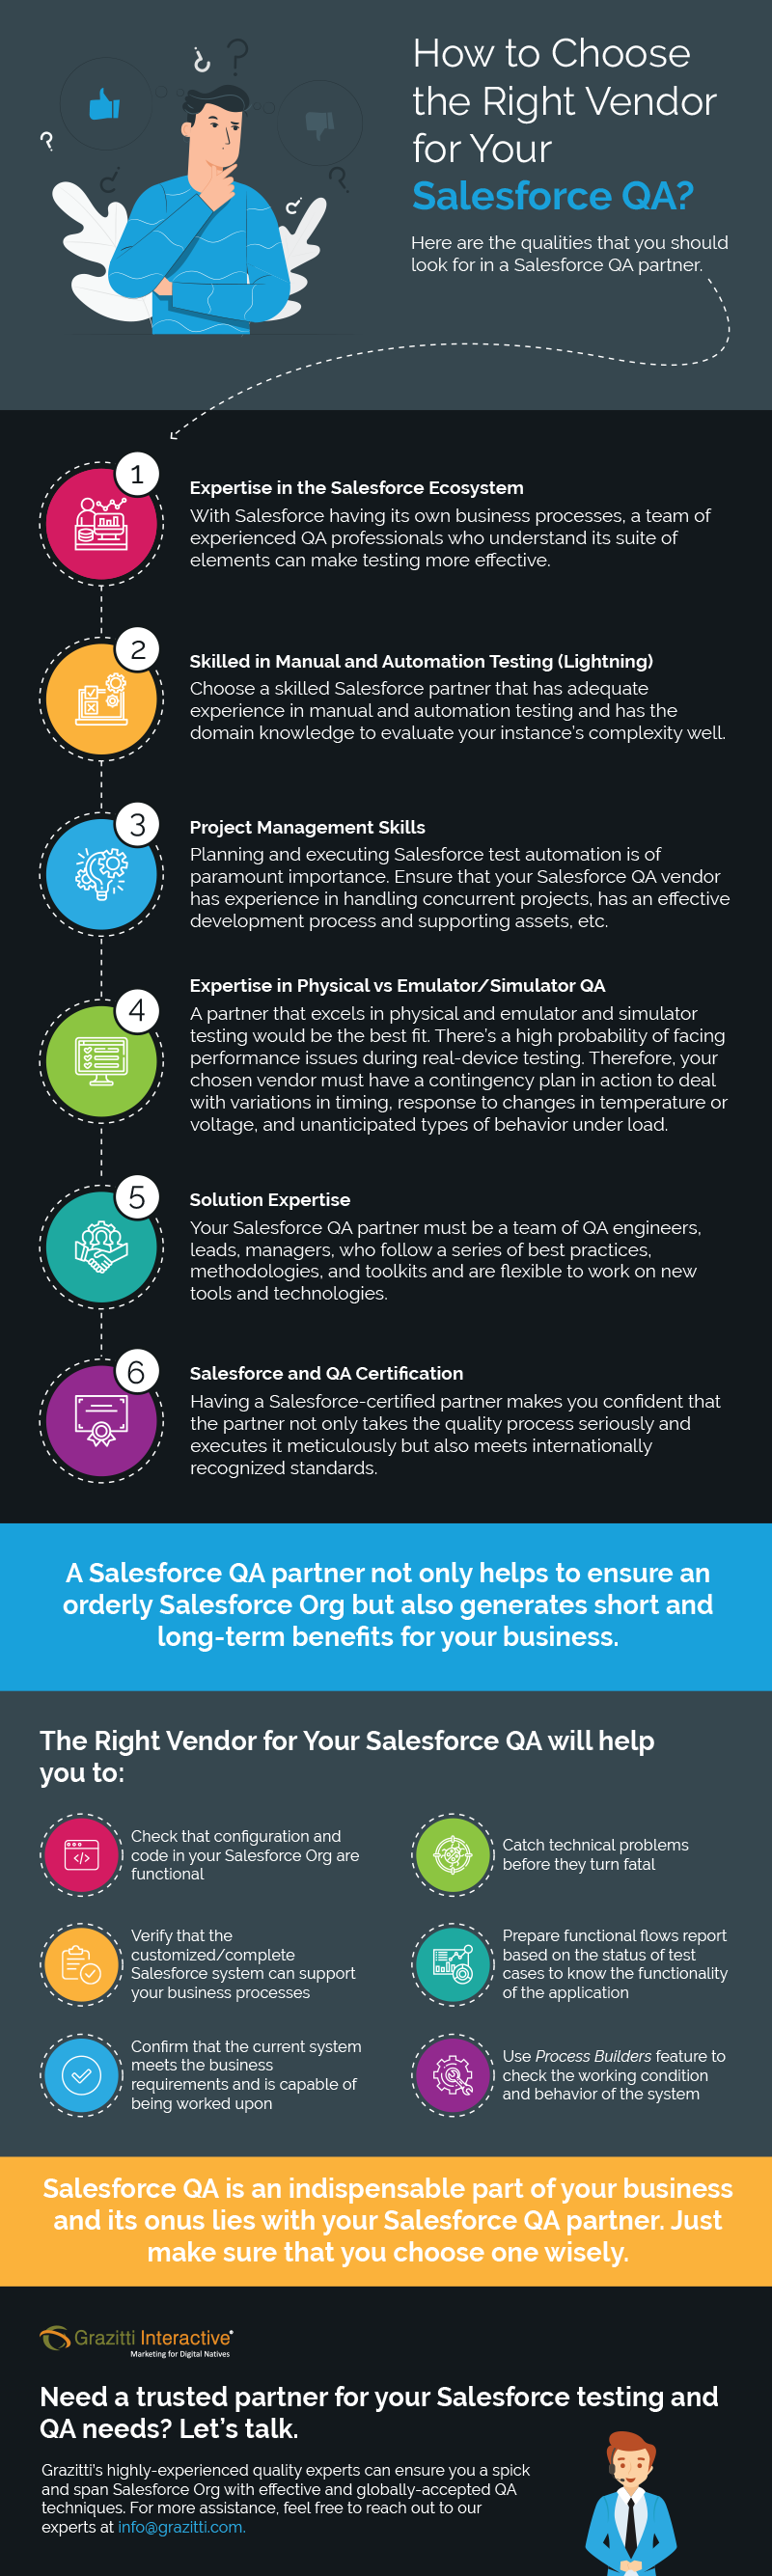 6 Tips to Evaluate the Right Salesforce QA Vendor